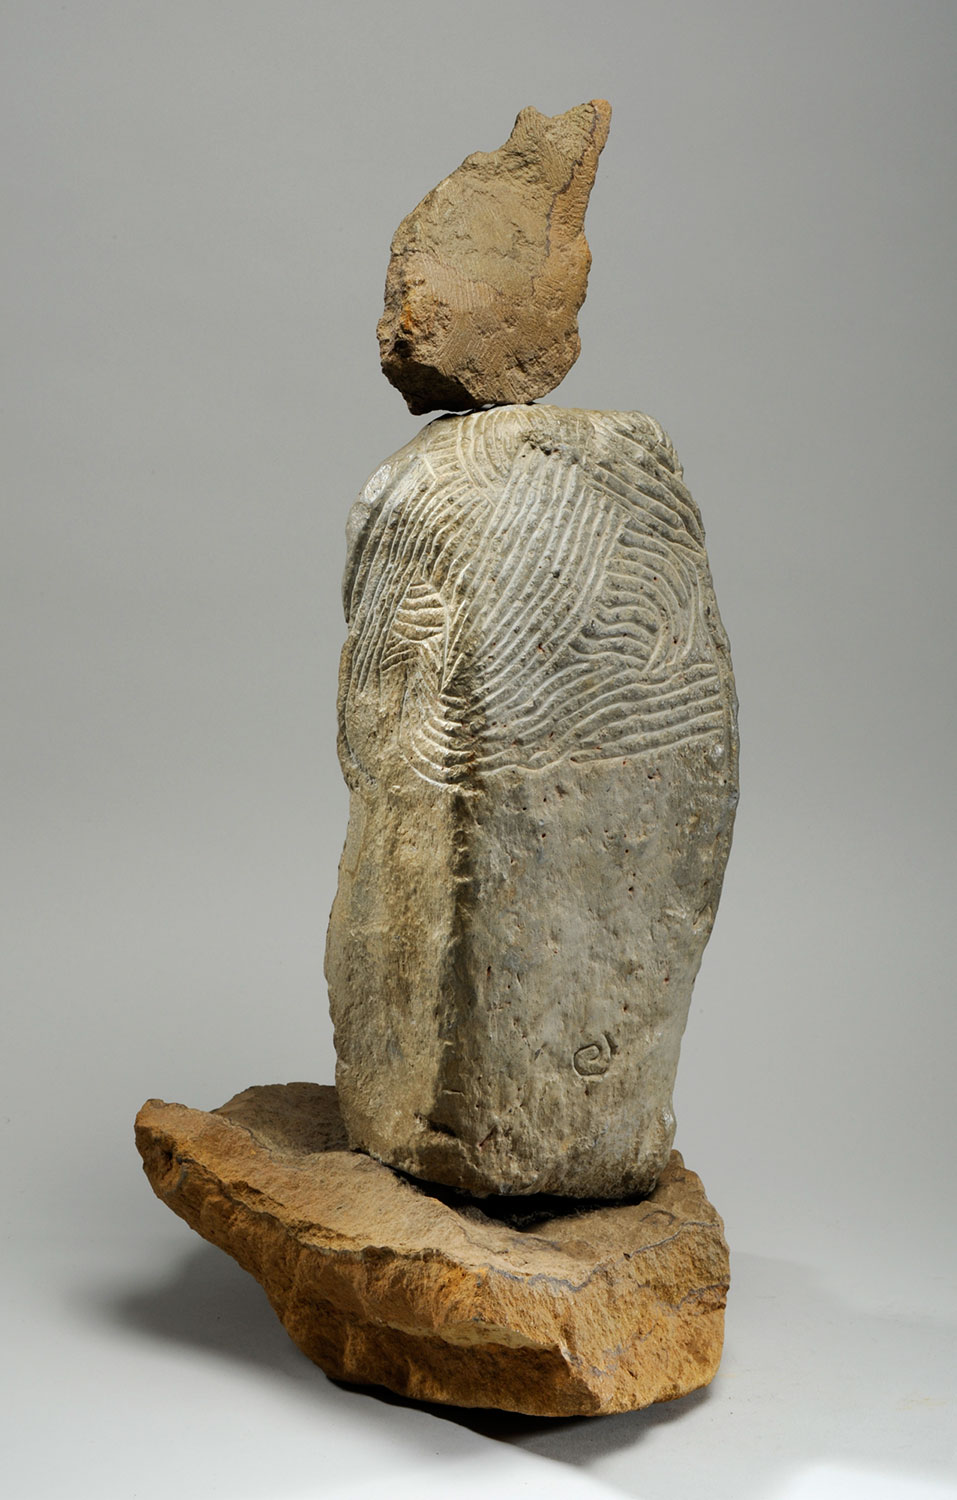 Barry Flanagan, 'Clay Figure' (1975)